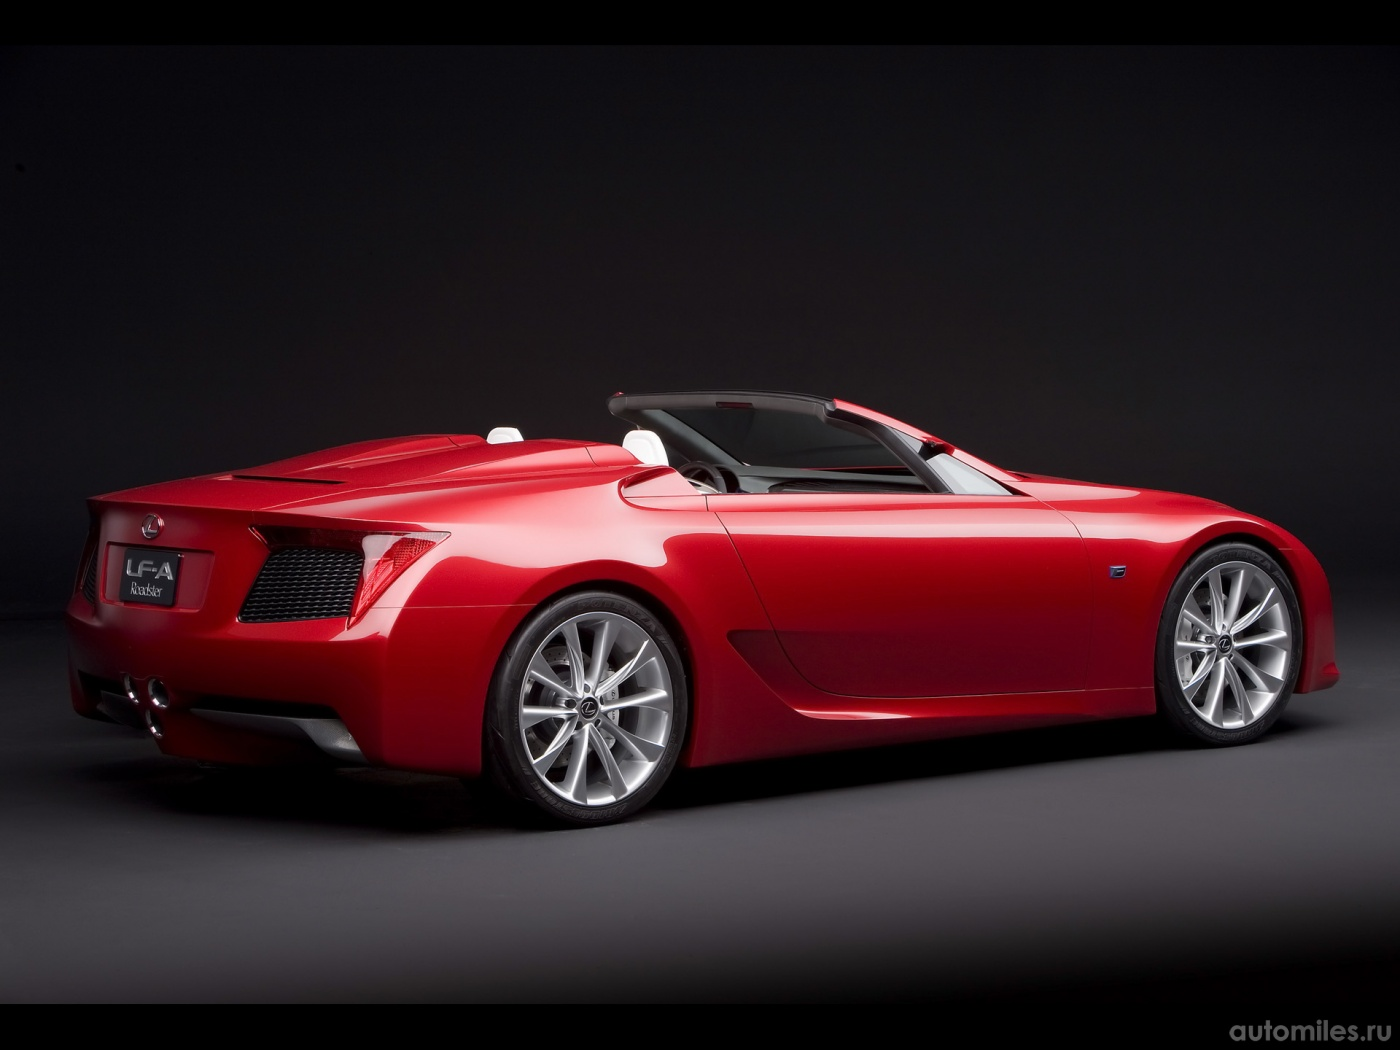 2008 Lexus LF A Roadster Concept Side Rear Angle